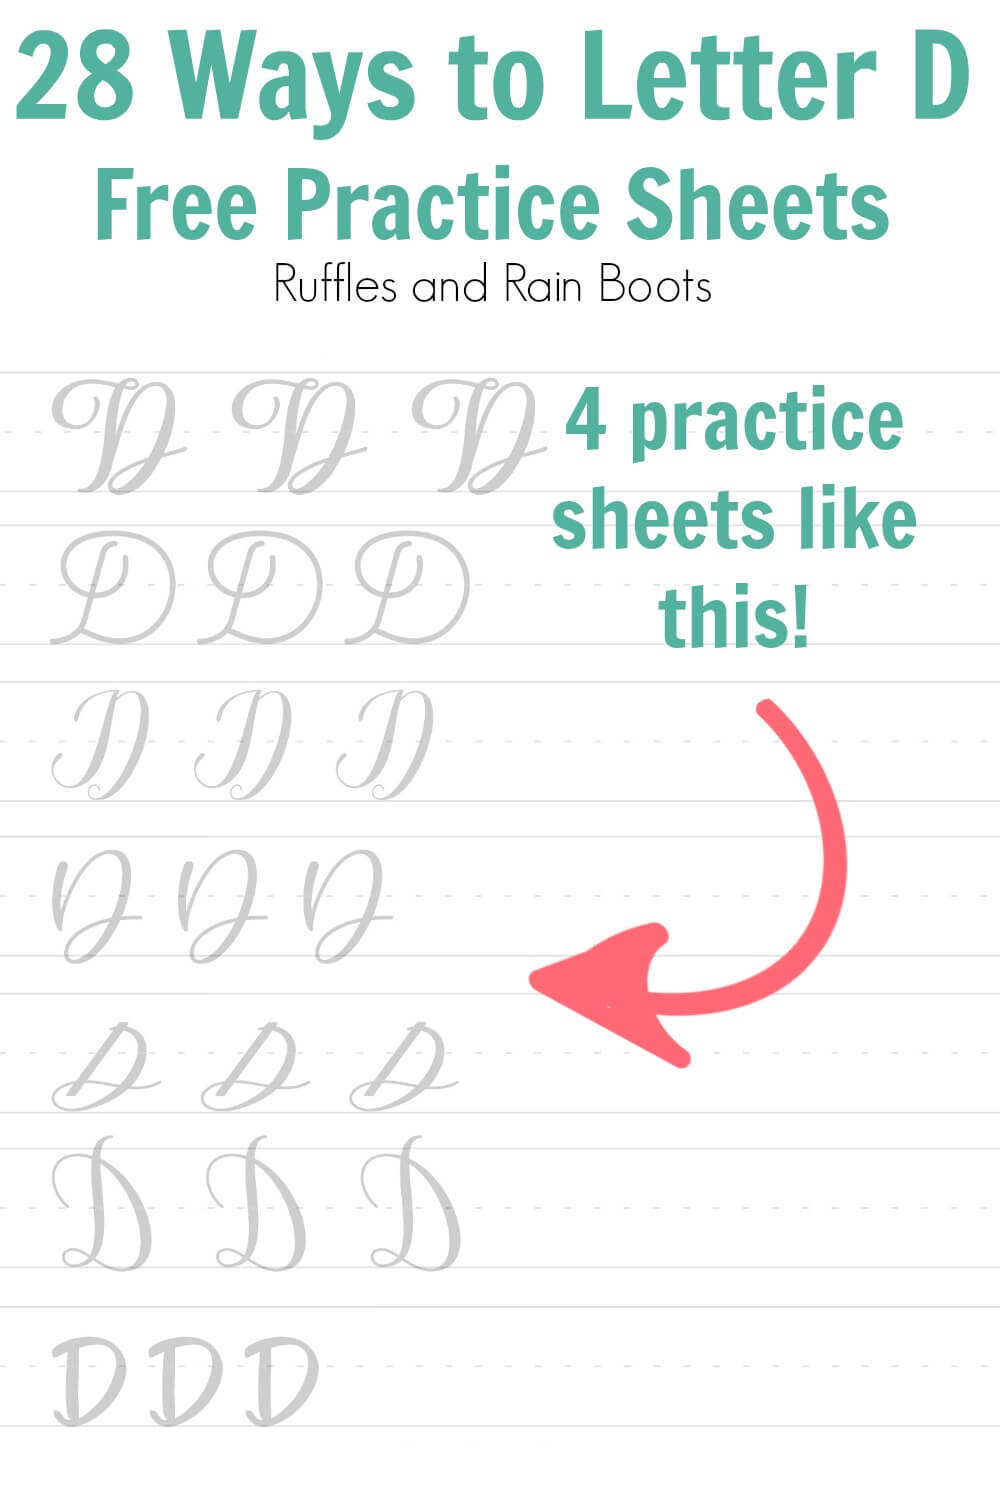 learn how to letter D for brush calligraphy